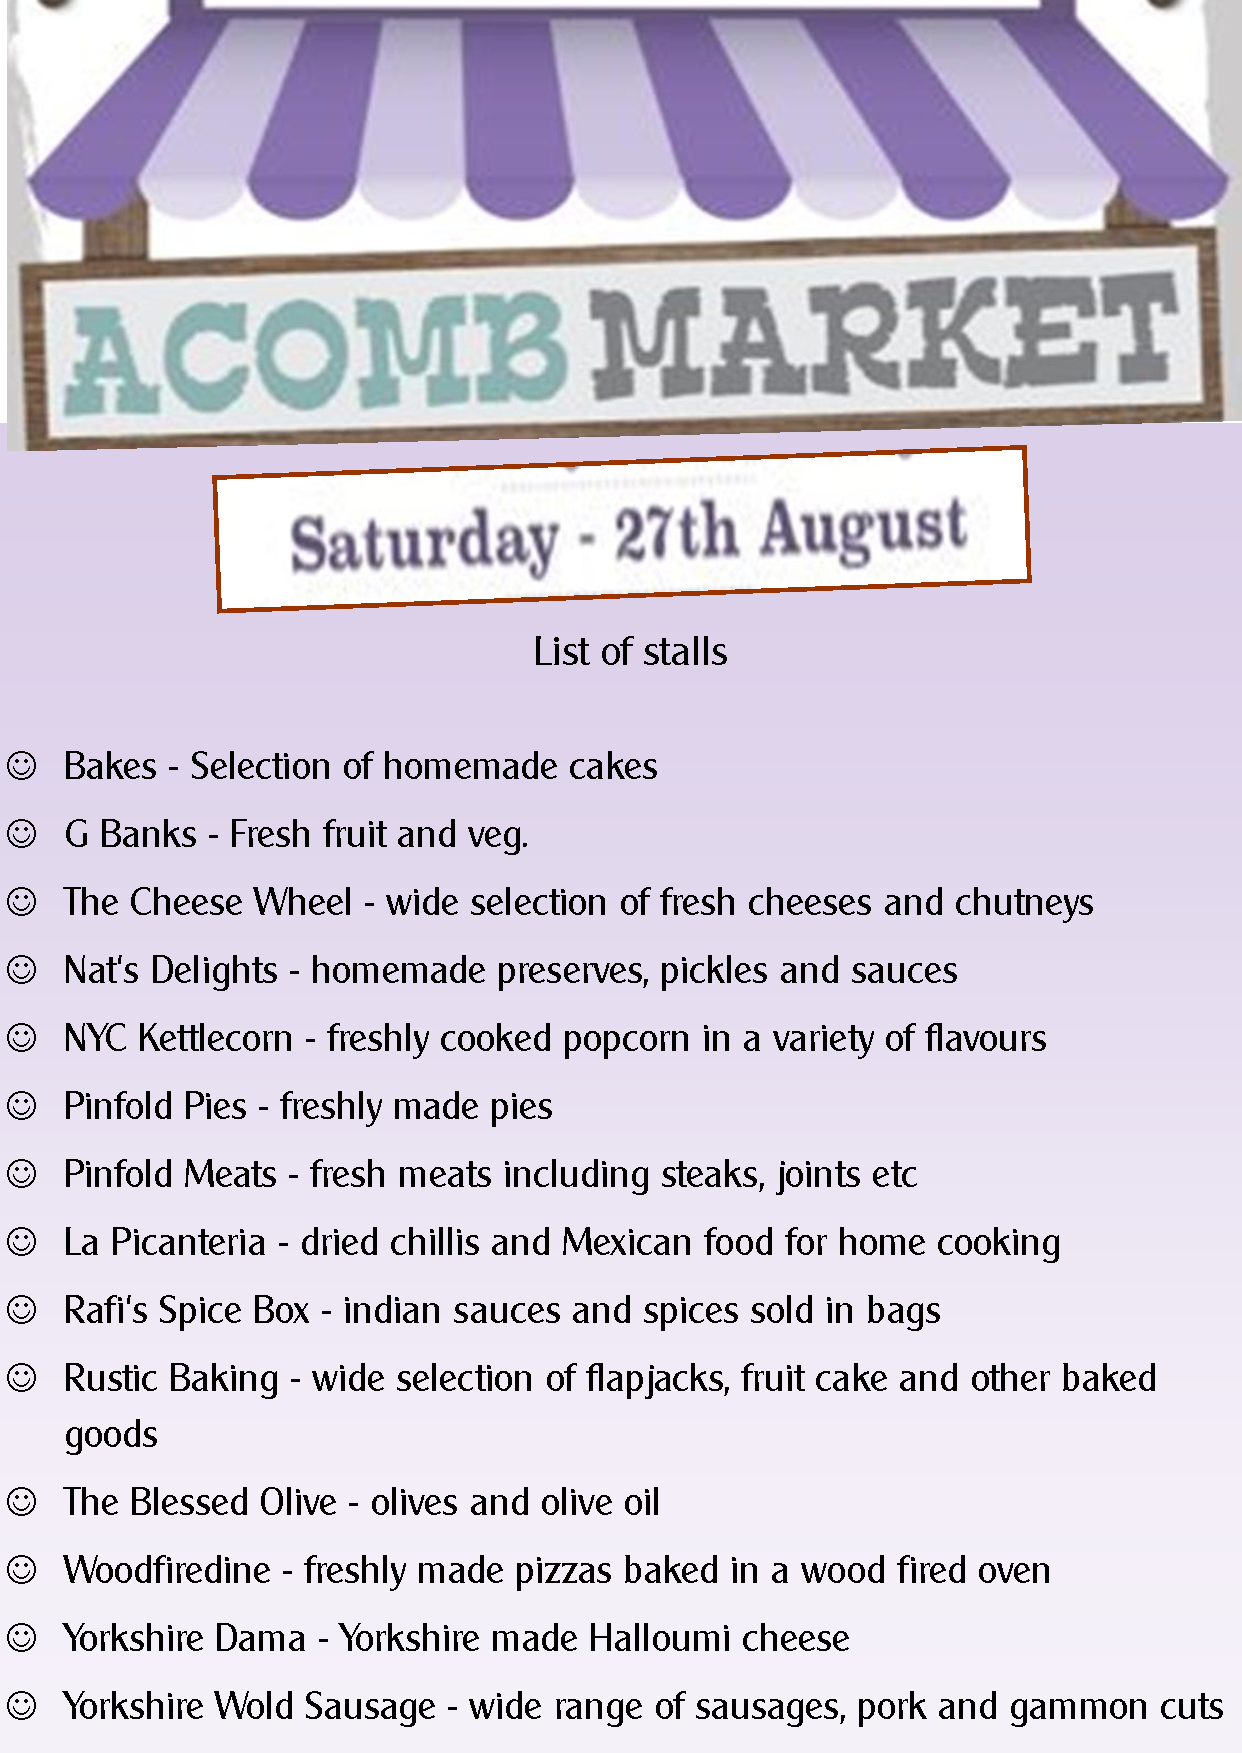 & the Acomb Market in now open!